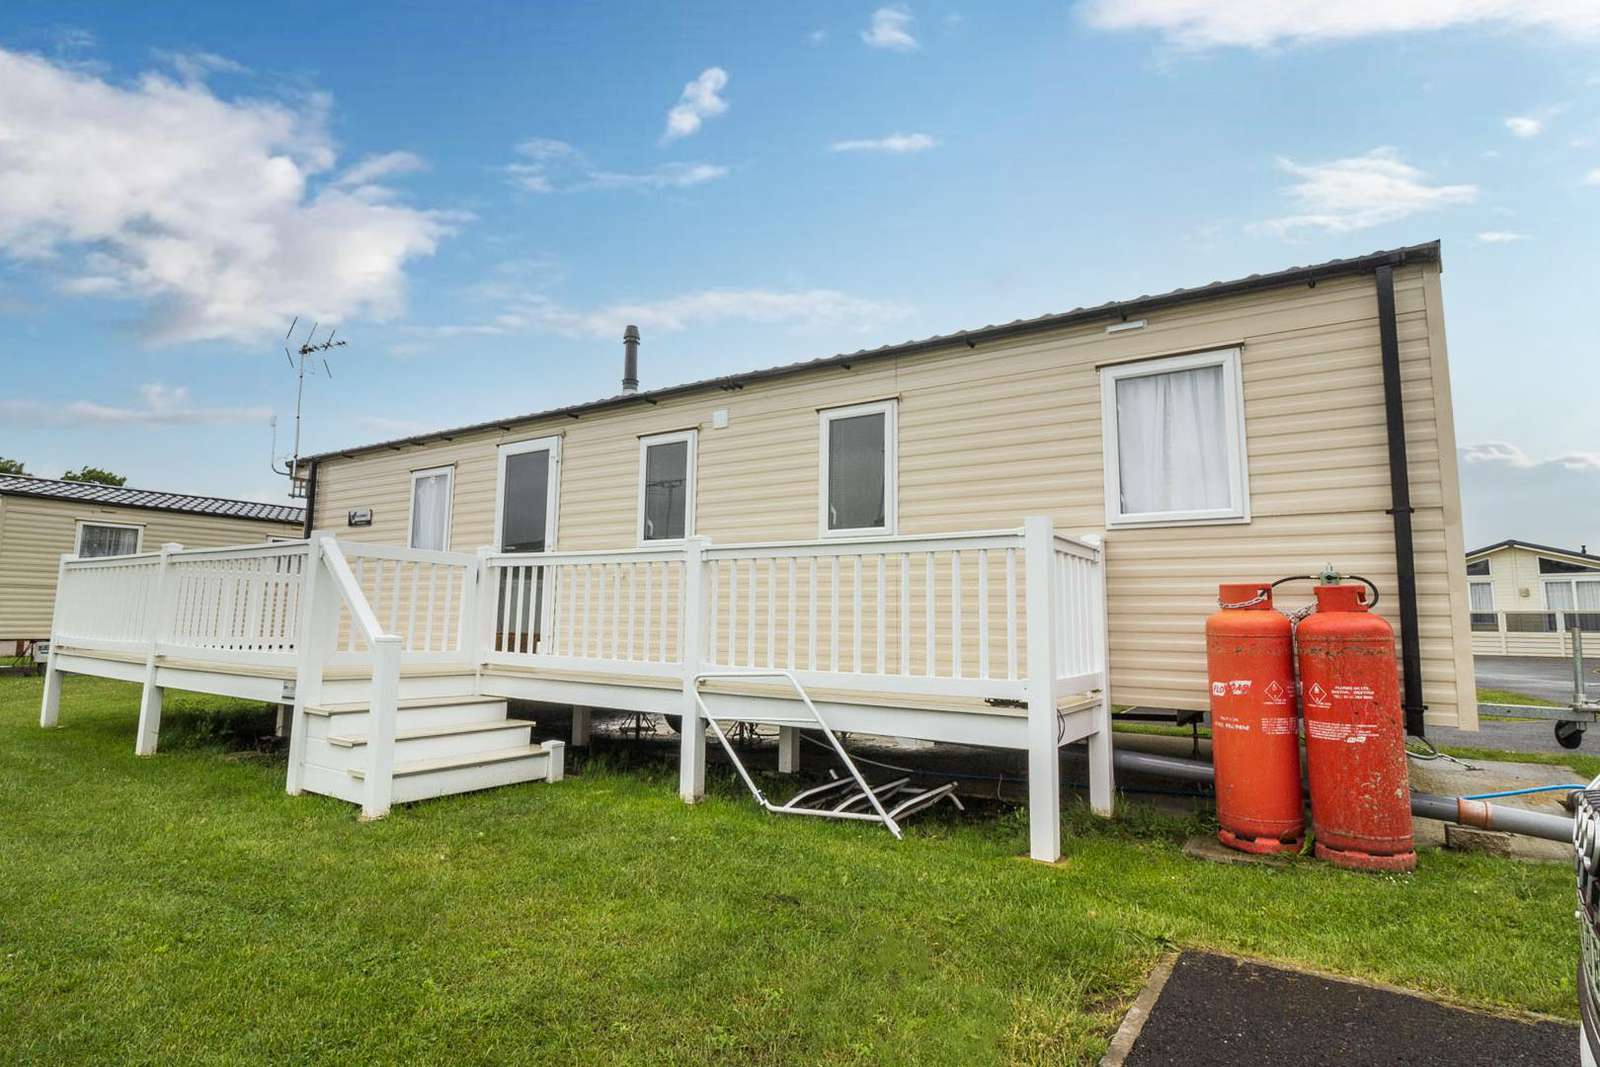 27471S – Seawick, 3 bed, 8 berth caravan with decking, D/G & C/H. Diamond rated. - property